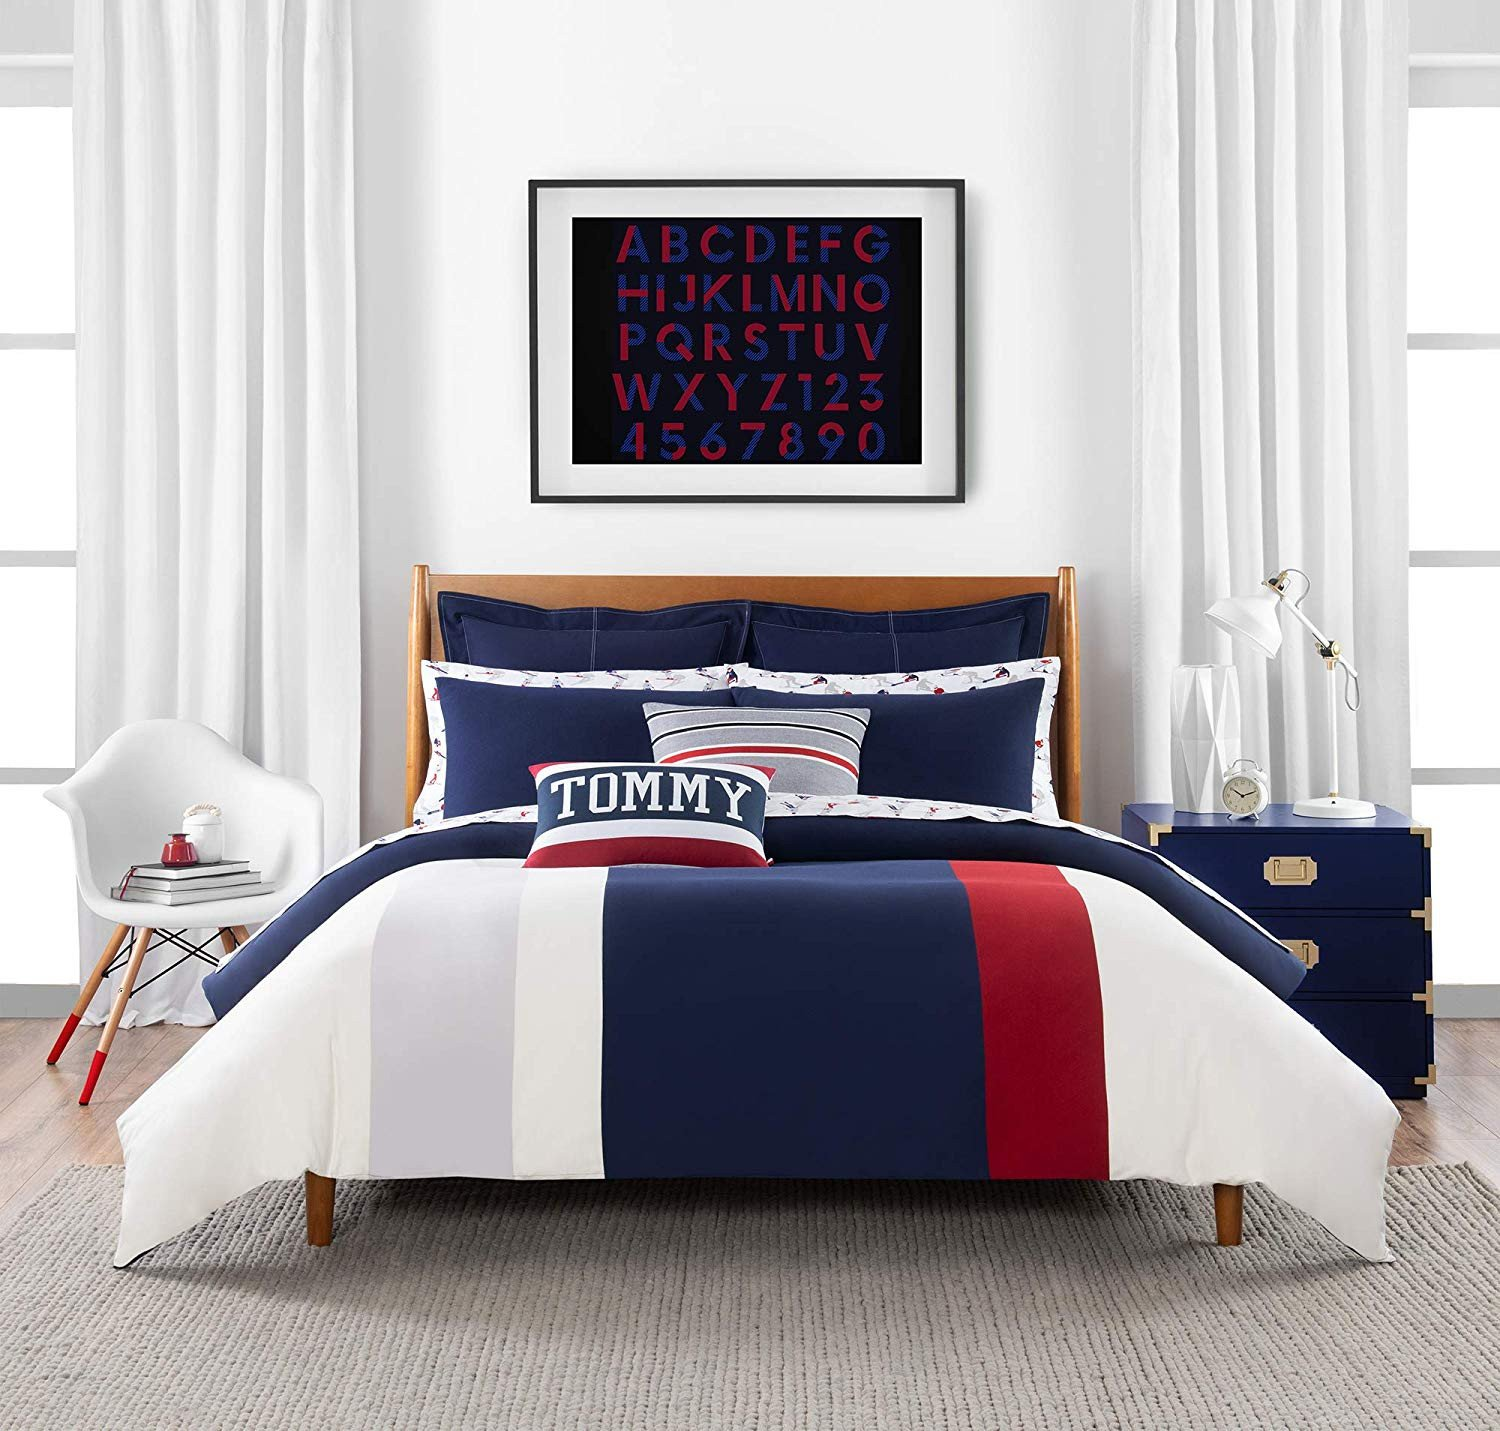 Rooms to Go King Bedroom Set Inspirational Amazon tommy Hilfiger Clash Of 85 Stripe Duvet Cover